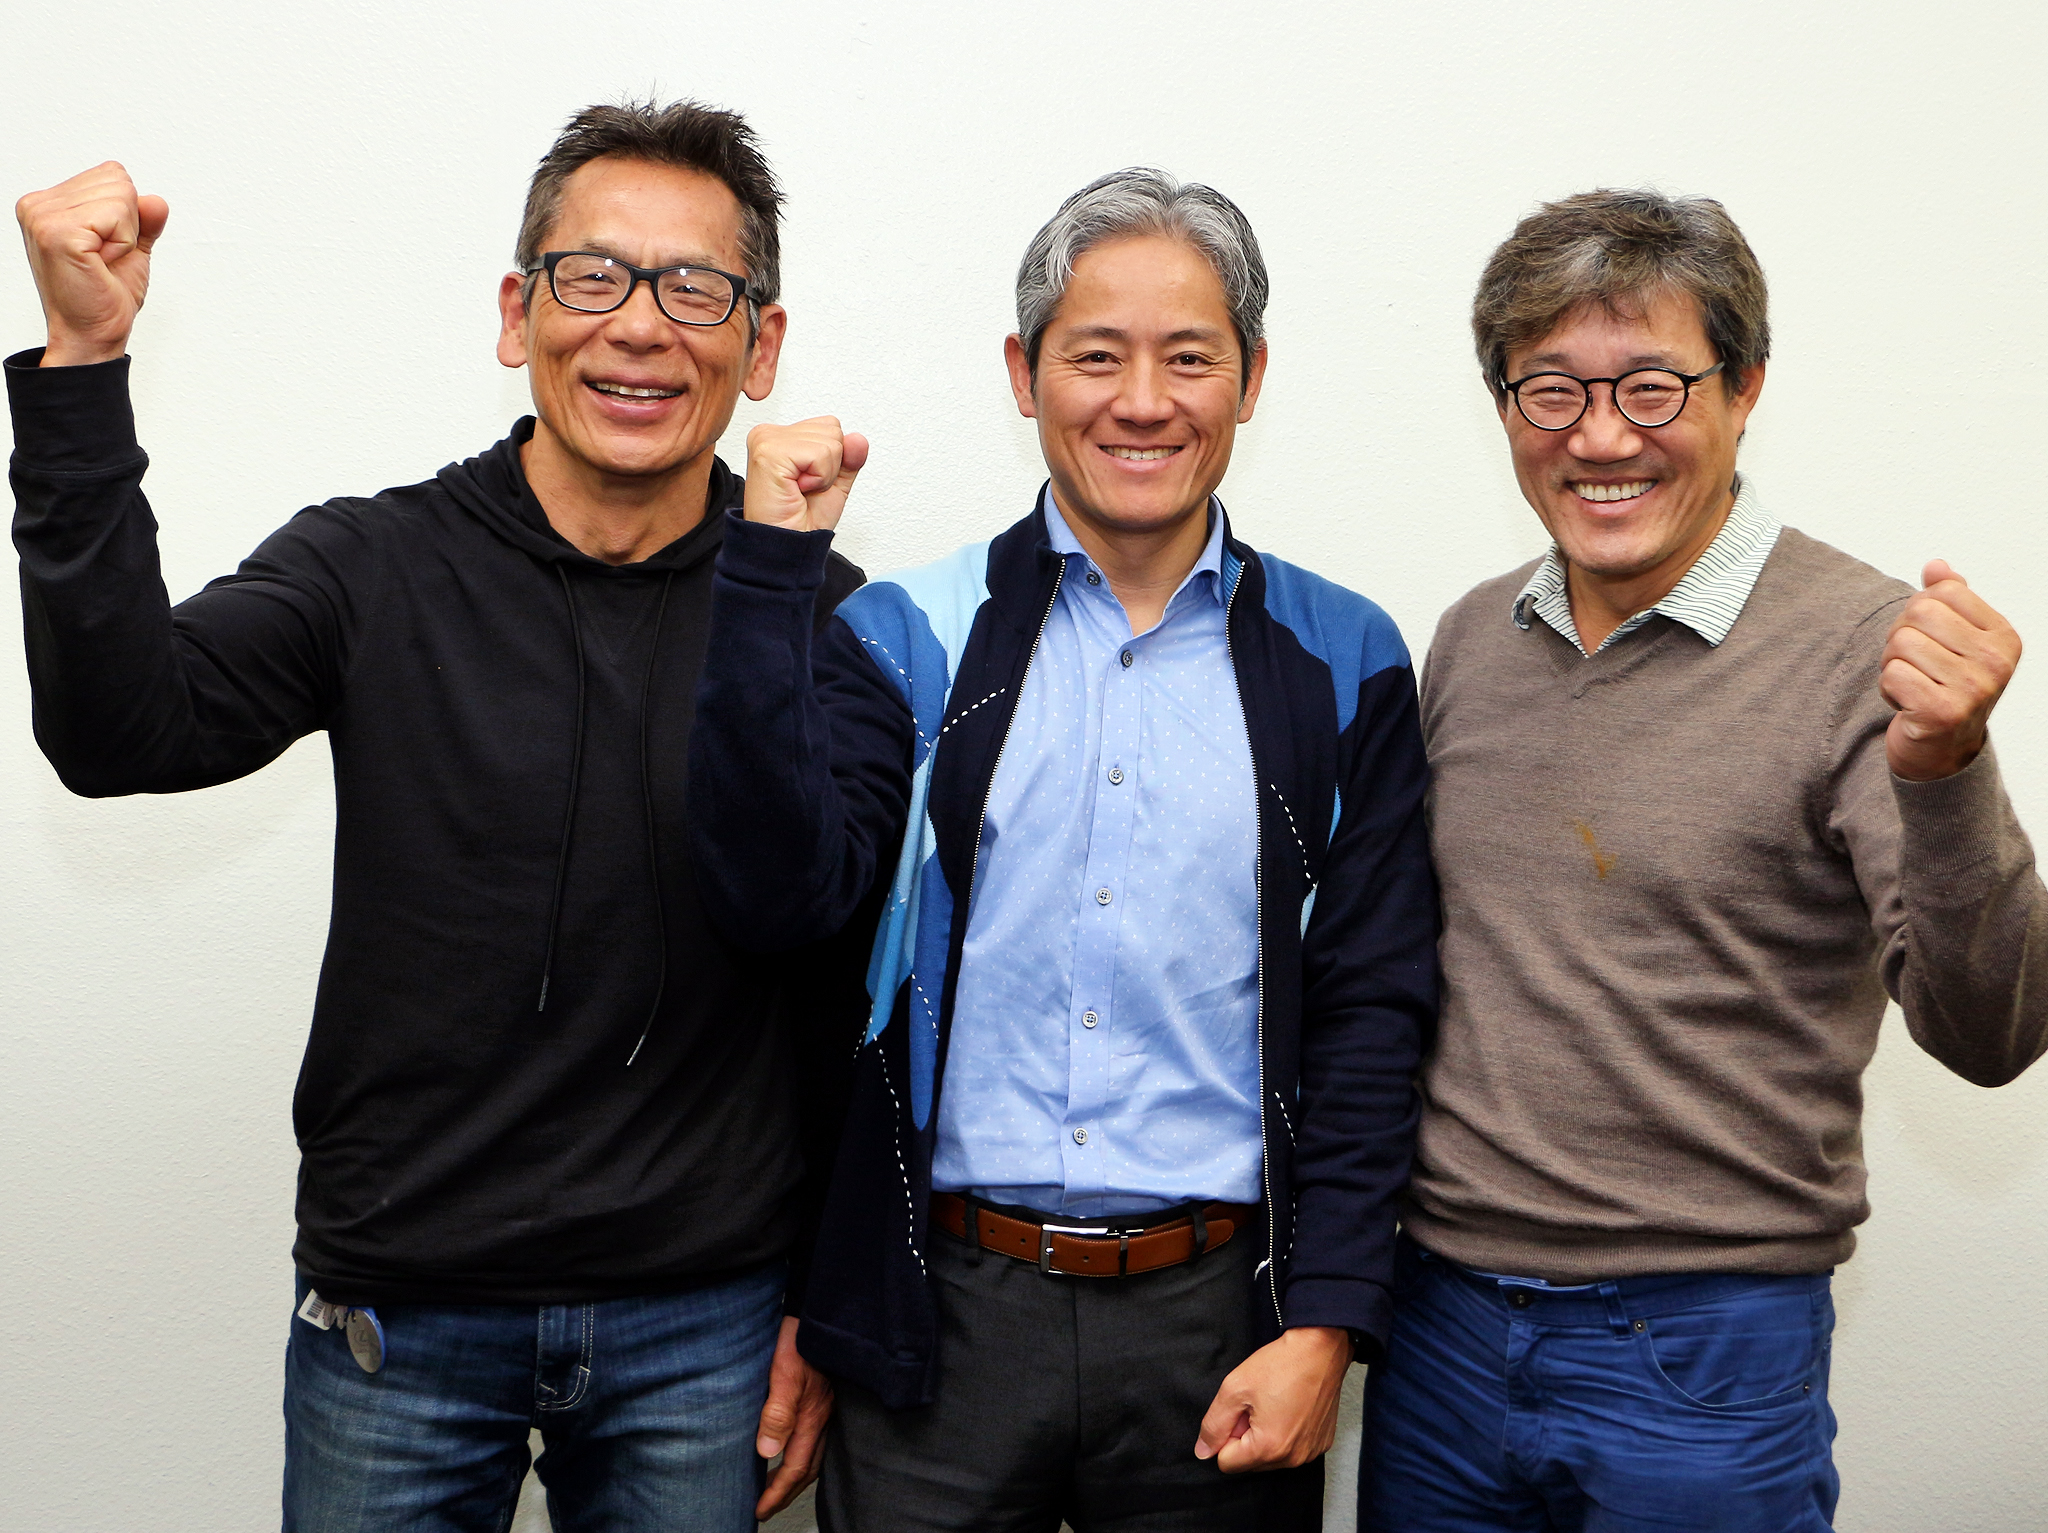 Korean American Triathlon Team chairman Nae-chang Park (from far left), manager Sean Lee and coach Jang-gyun Yoon are looking motivated as they look to accept new members.